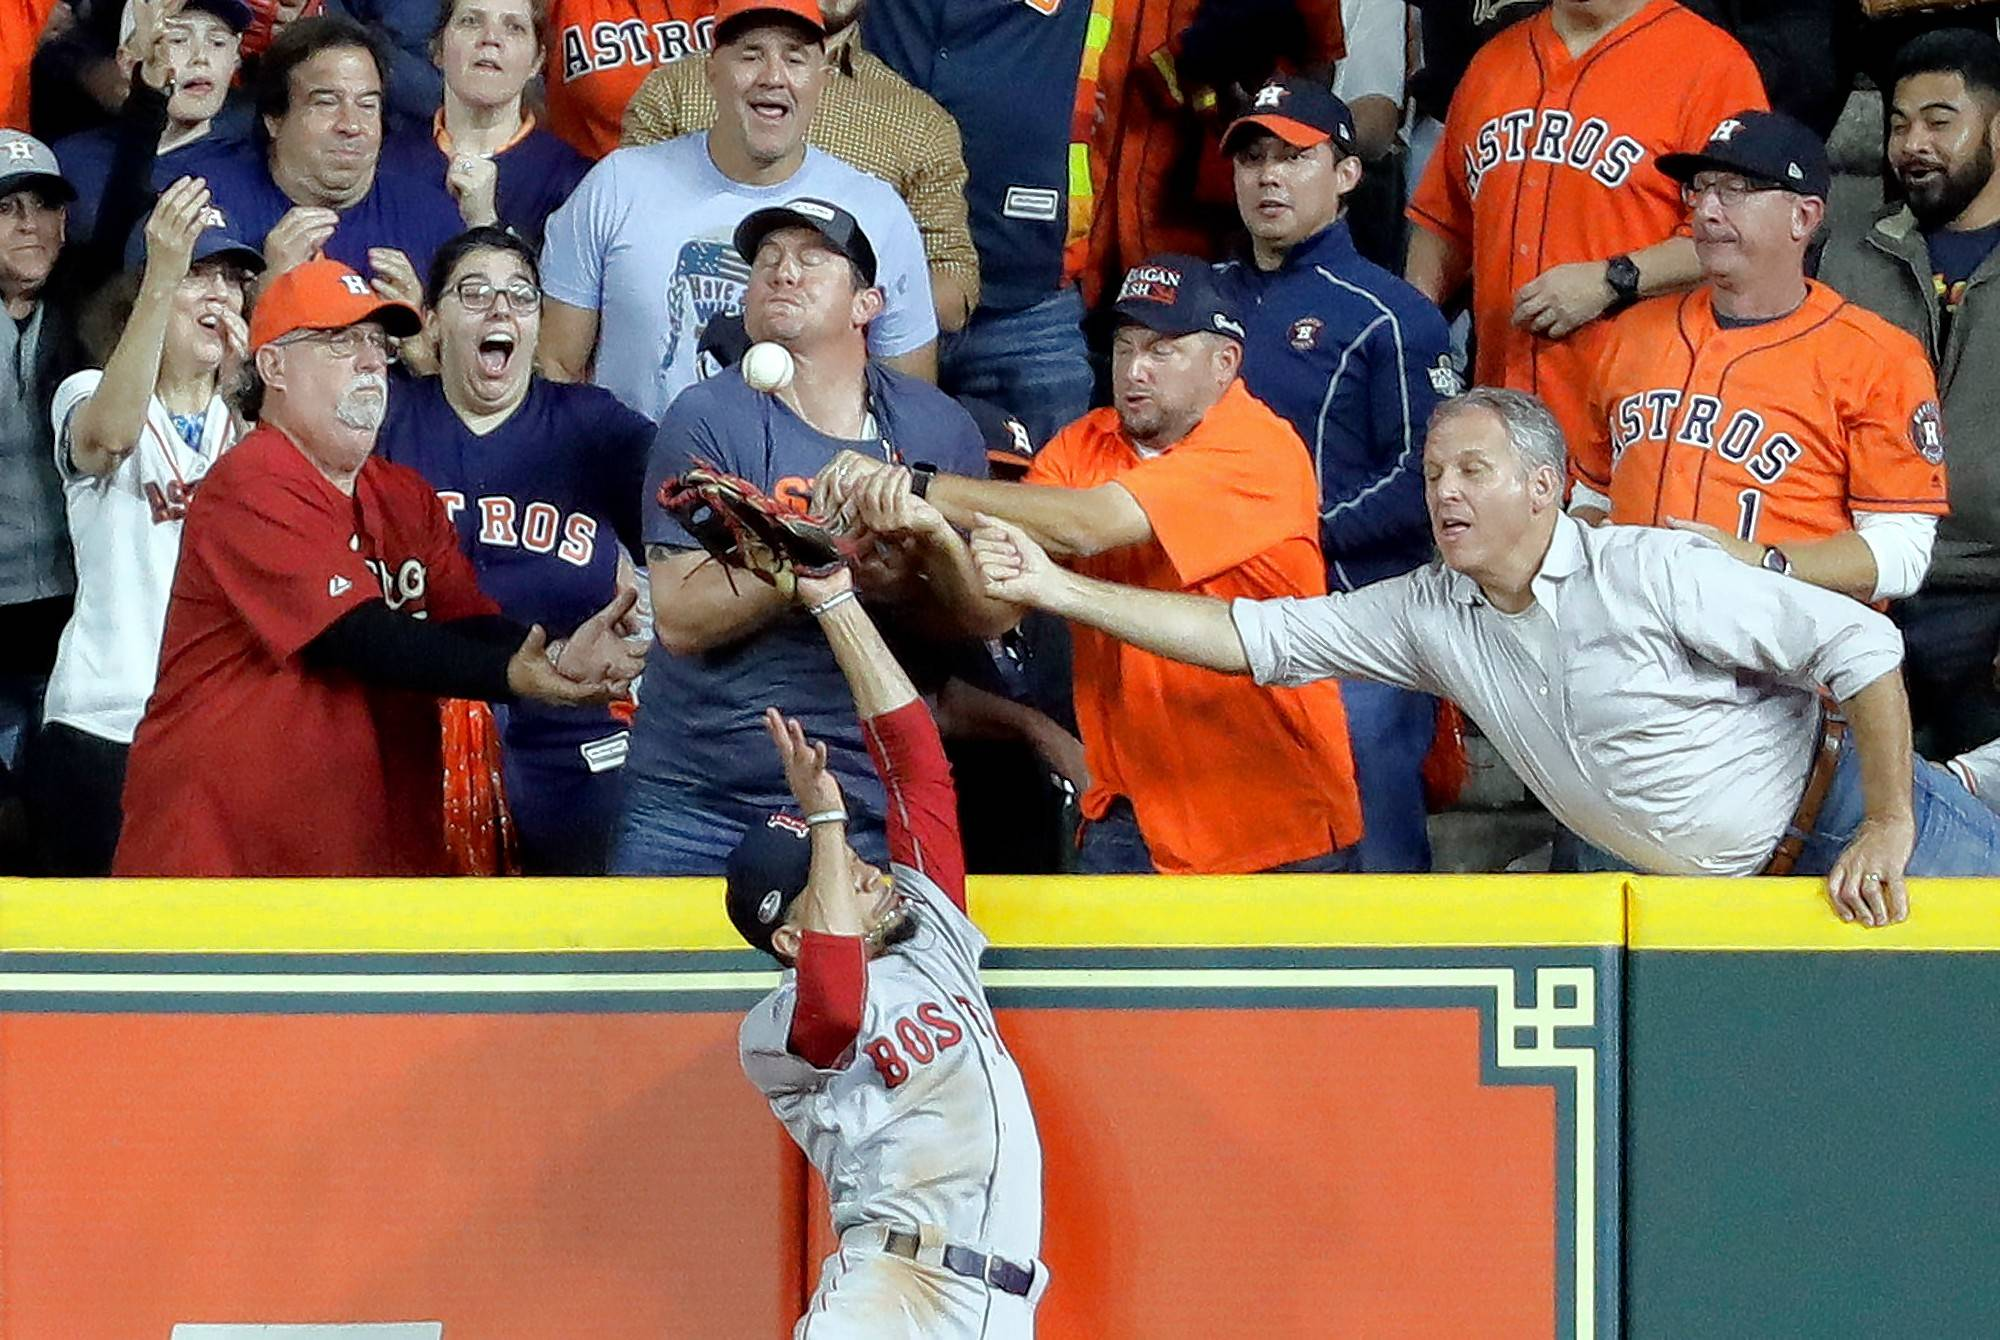 Fans interfere with Boston Red Sox right fielder Mookie Betts trying to catch a ball hit by Houston Astros' Jose Altuve during the first inning in Game 4 of a baseball American League Championship Series on Wednesday, Oct. 17, 2018, in Houston. Altuve was called out.